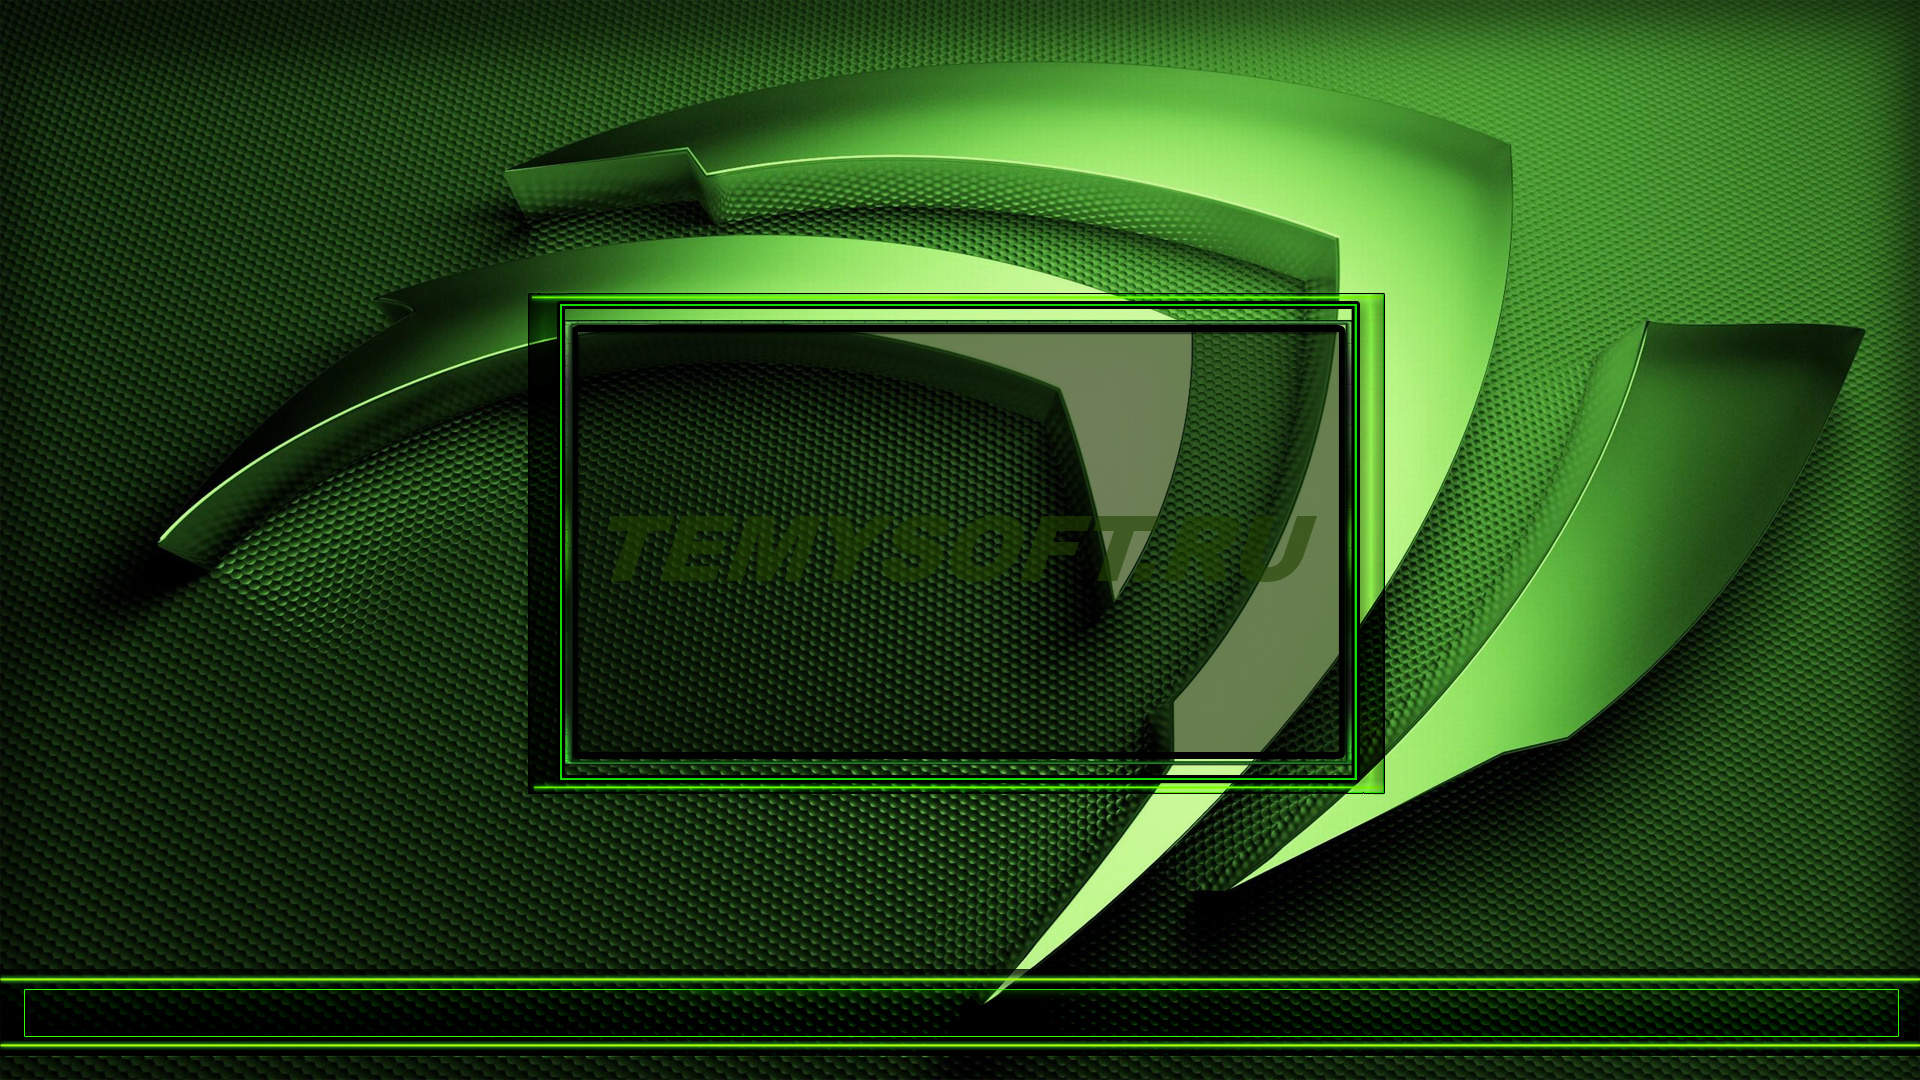 Nvidia LOGON Screen + user image by ostx